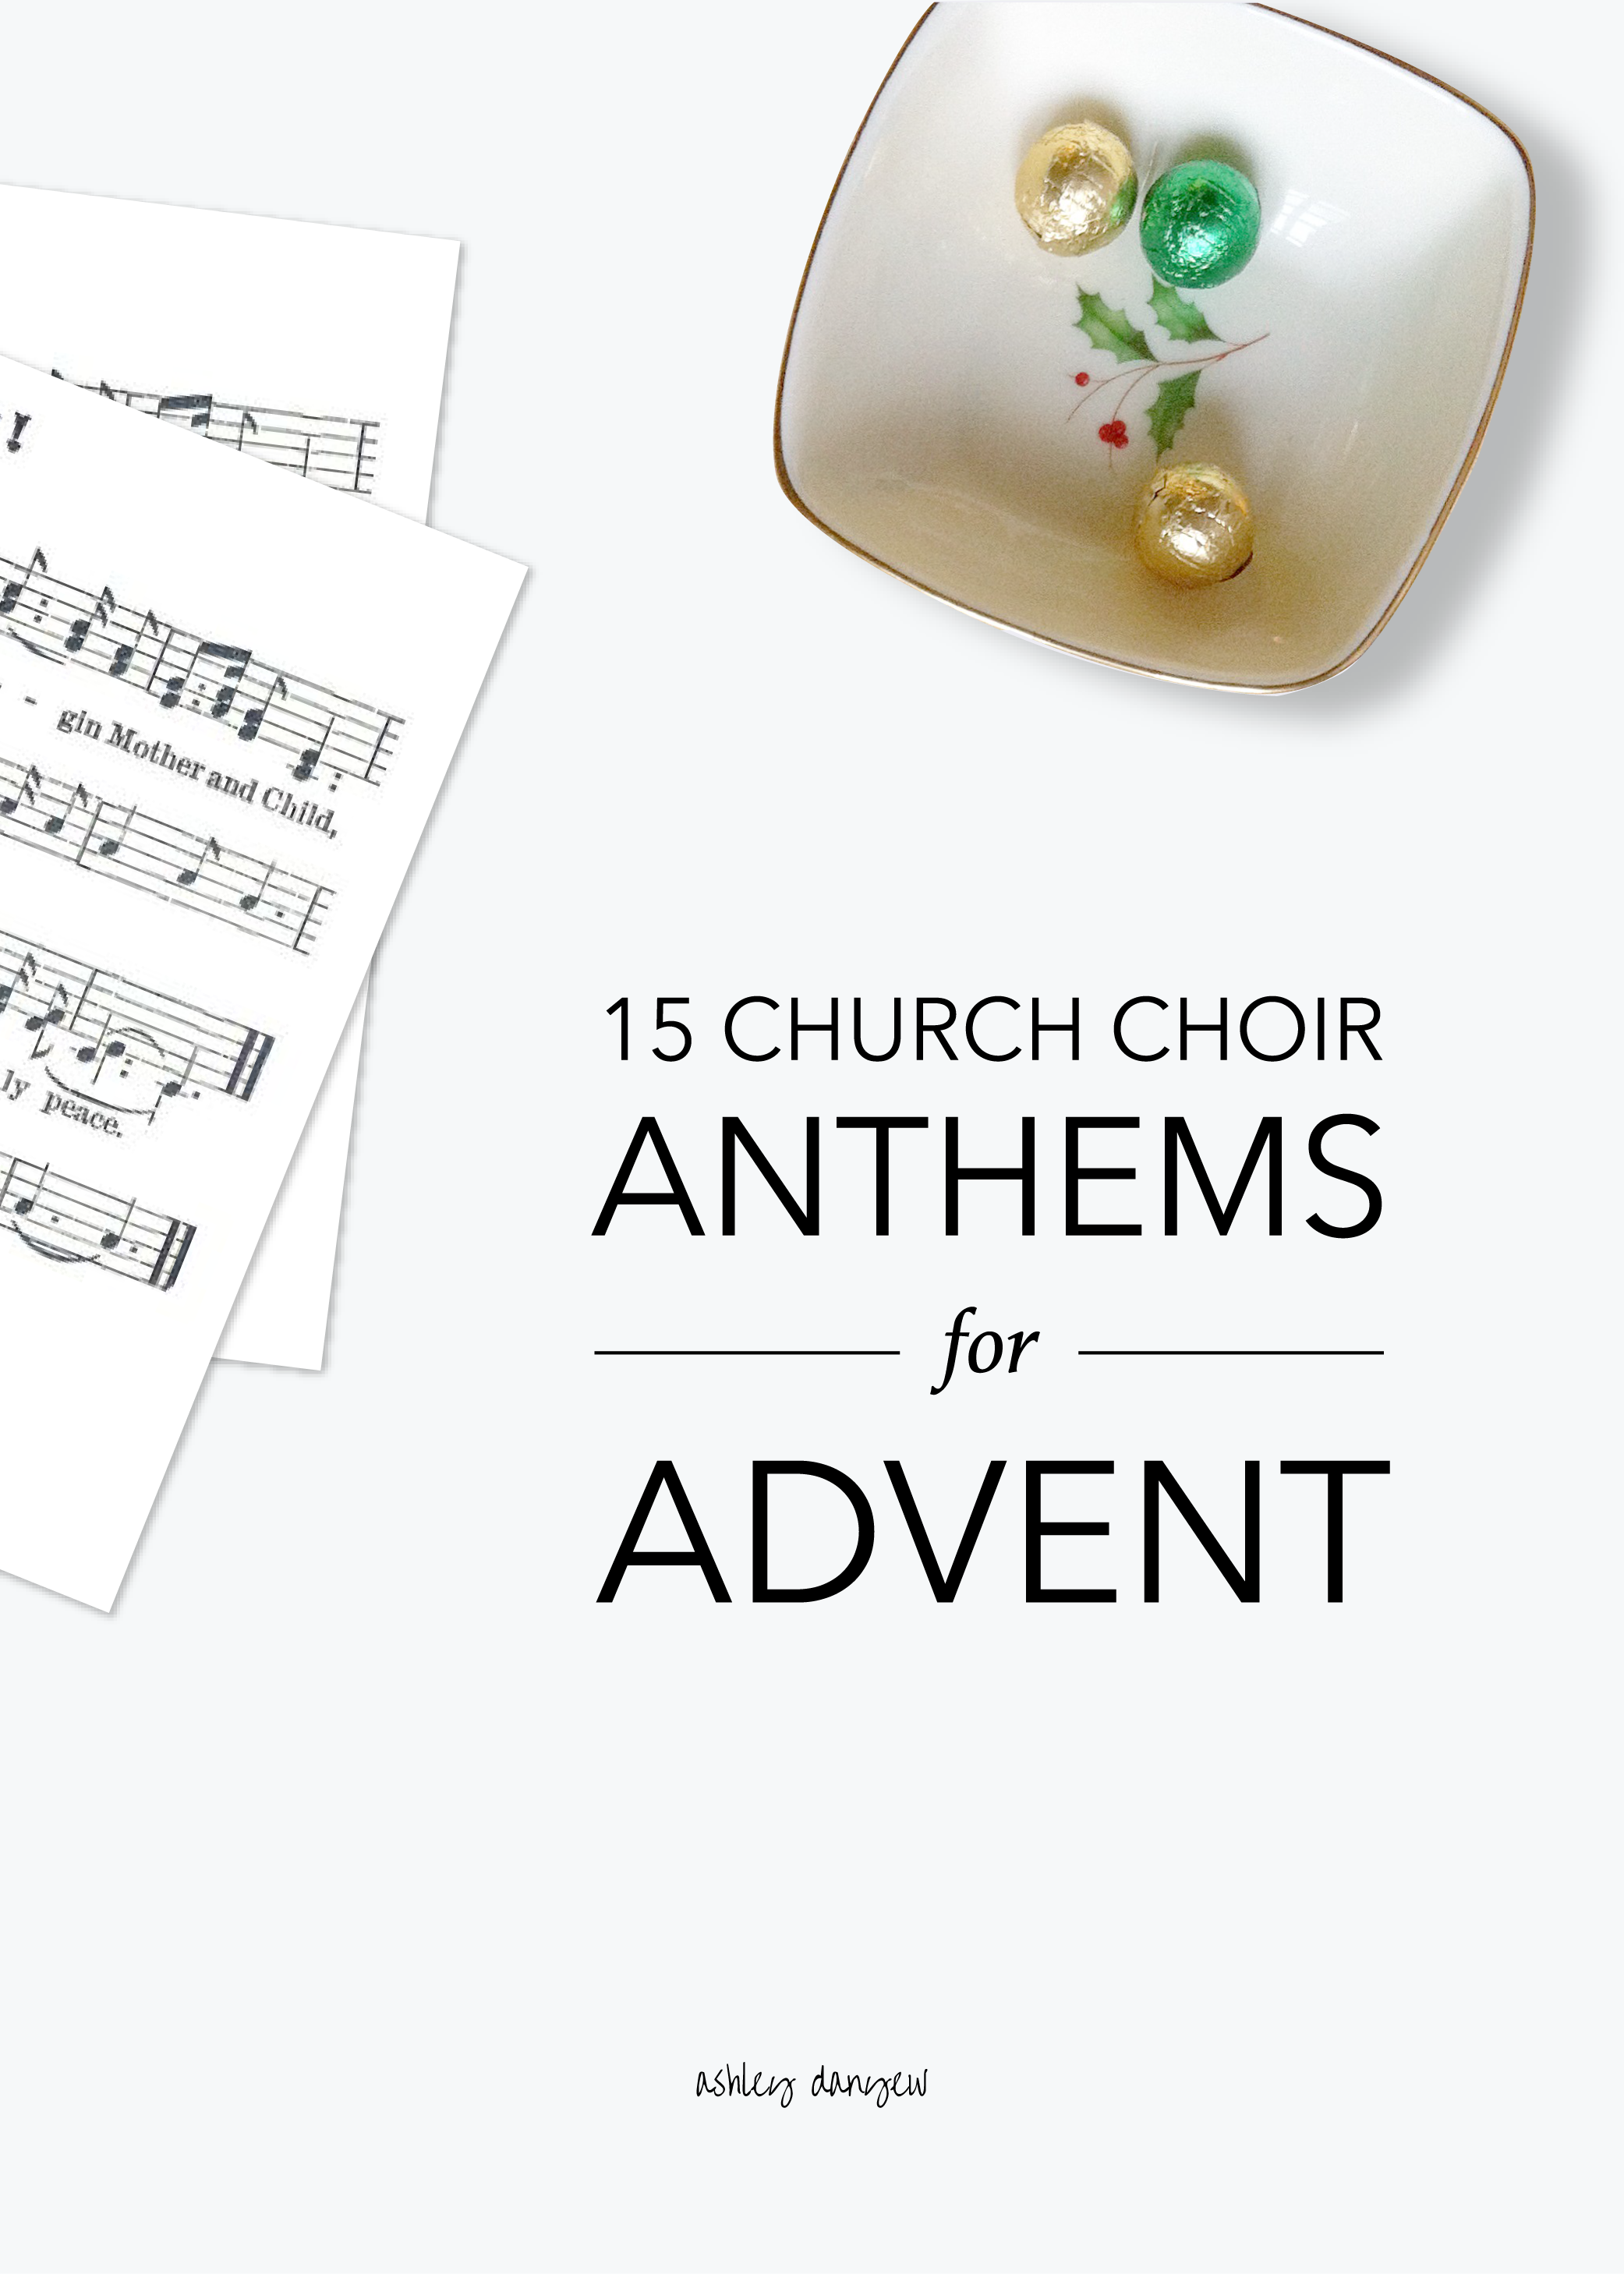 Copy of 15 Church Choir Anthems for Advent